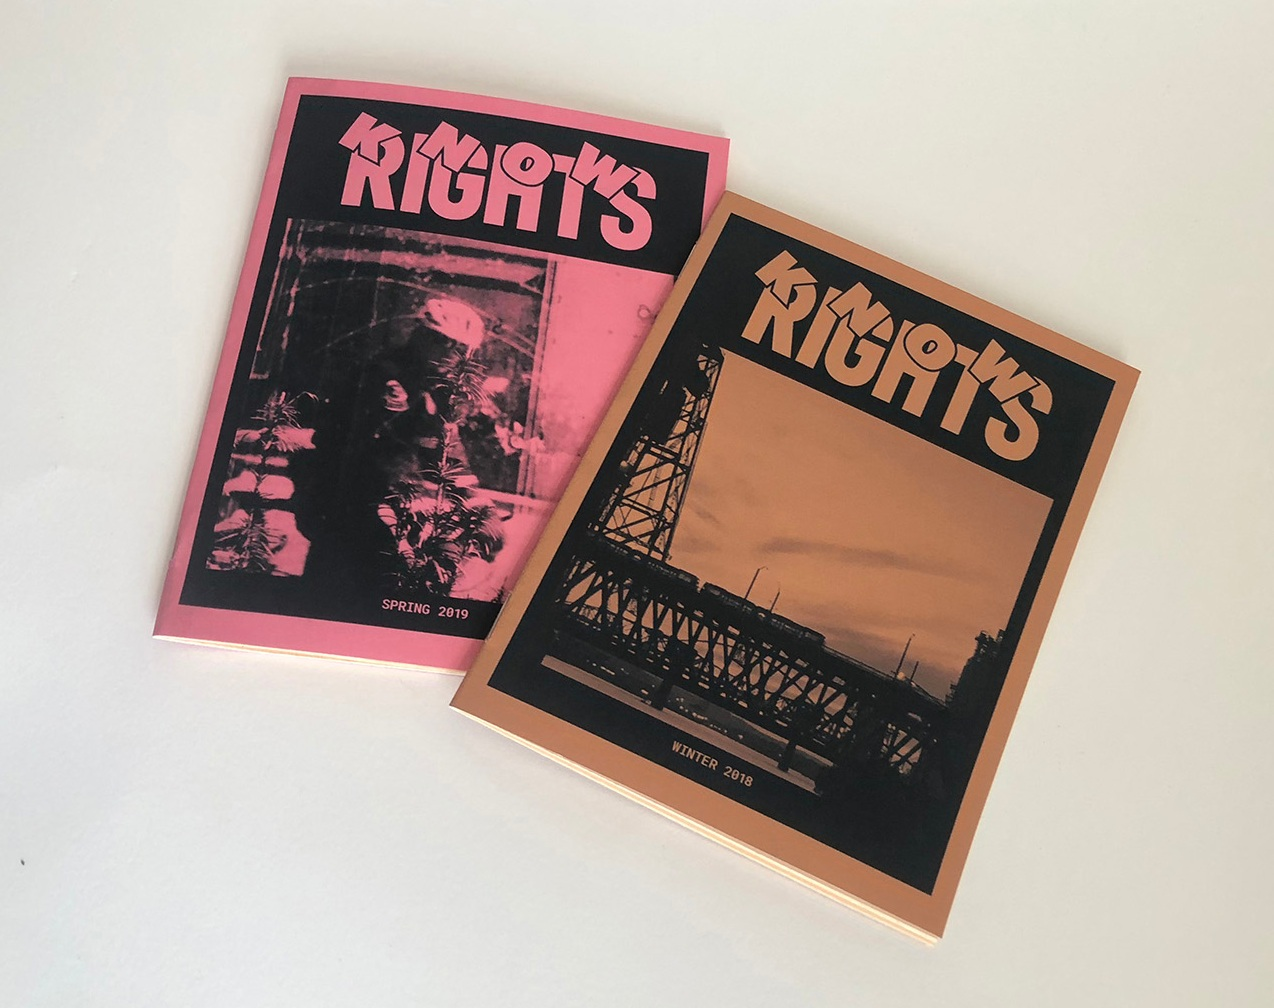 know RIGHTS - Who has the time to search through all the news outlets to find reliable, relevant, news? KNOW RIGHTS is a free, quarterly, news publication that presents local news, and important issues, curated to keep busy Portlanders informed. KNOW RIGHTS is advertisement-free preventing bias and clutter.